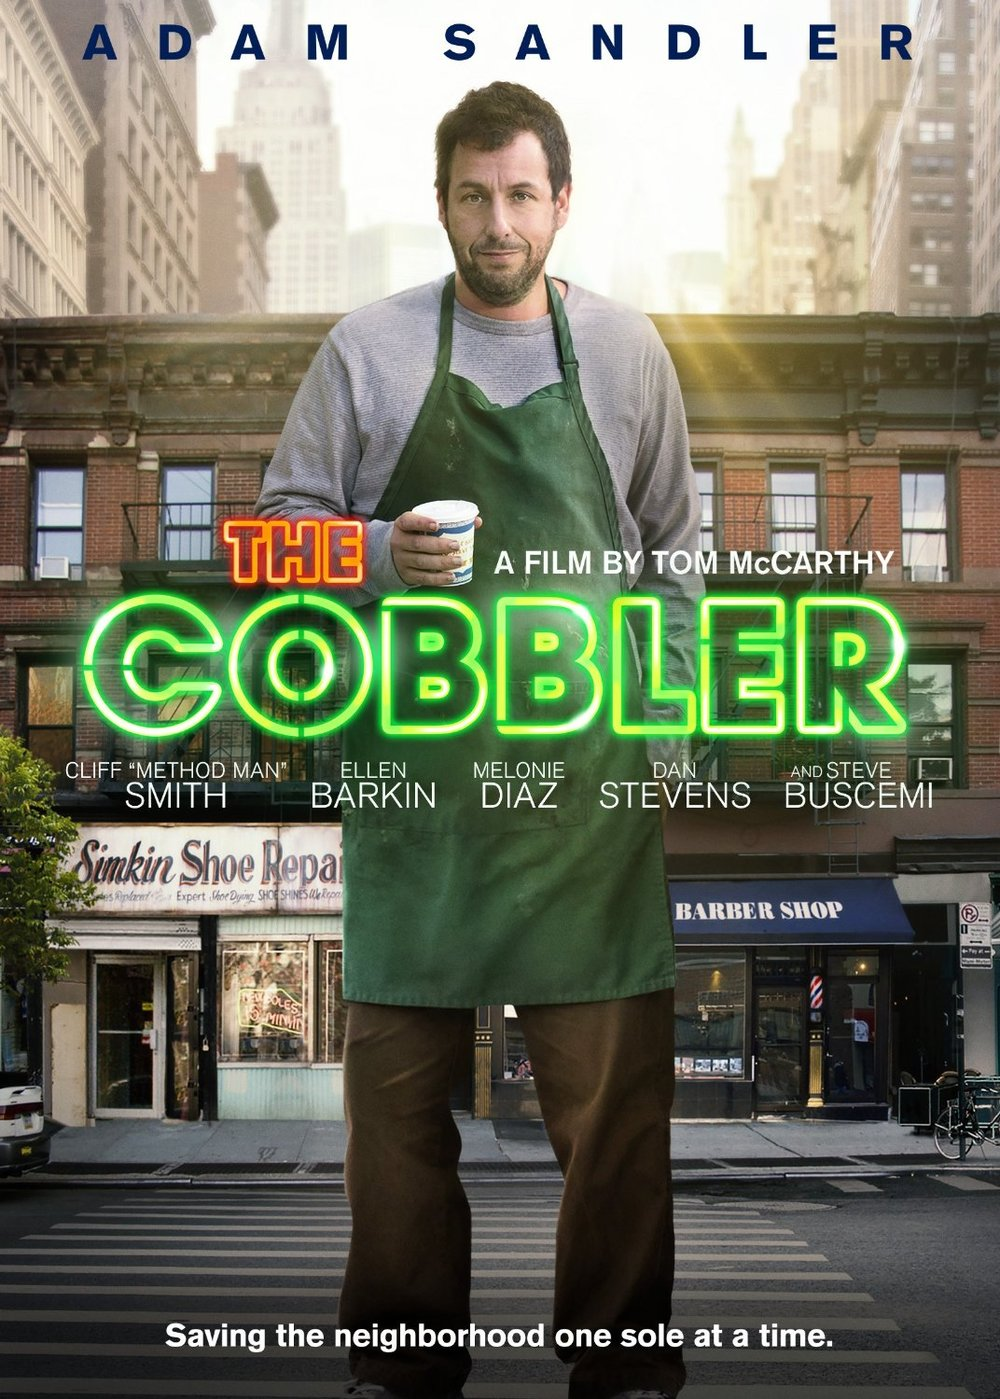 The Cobbler movie